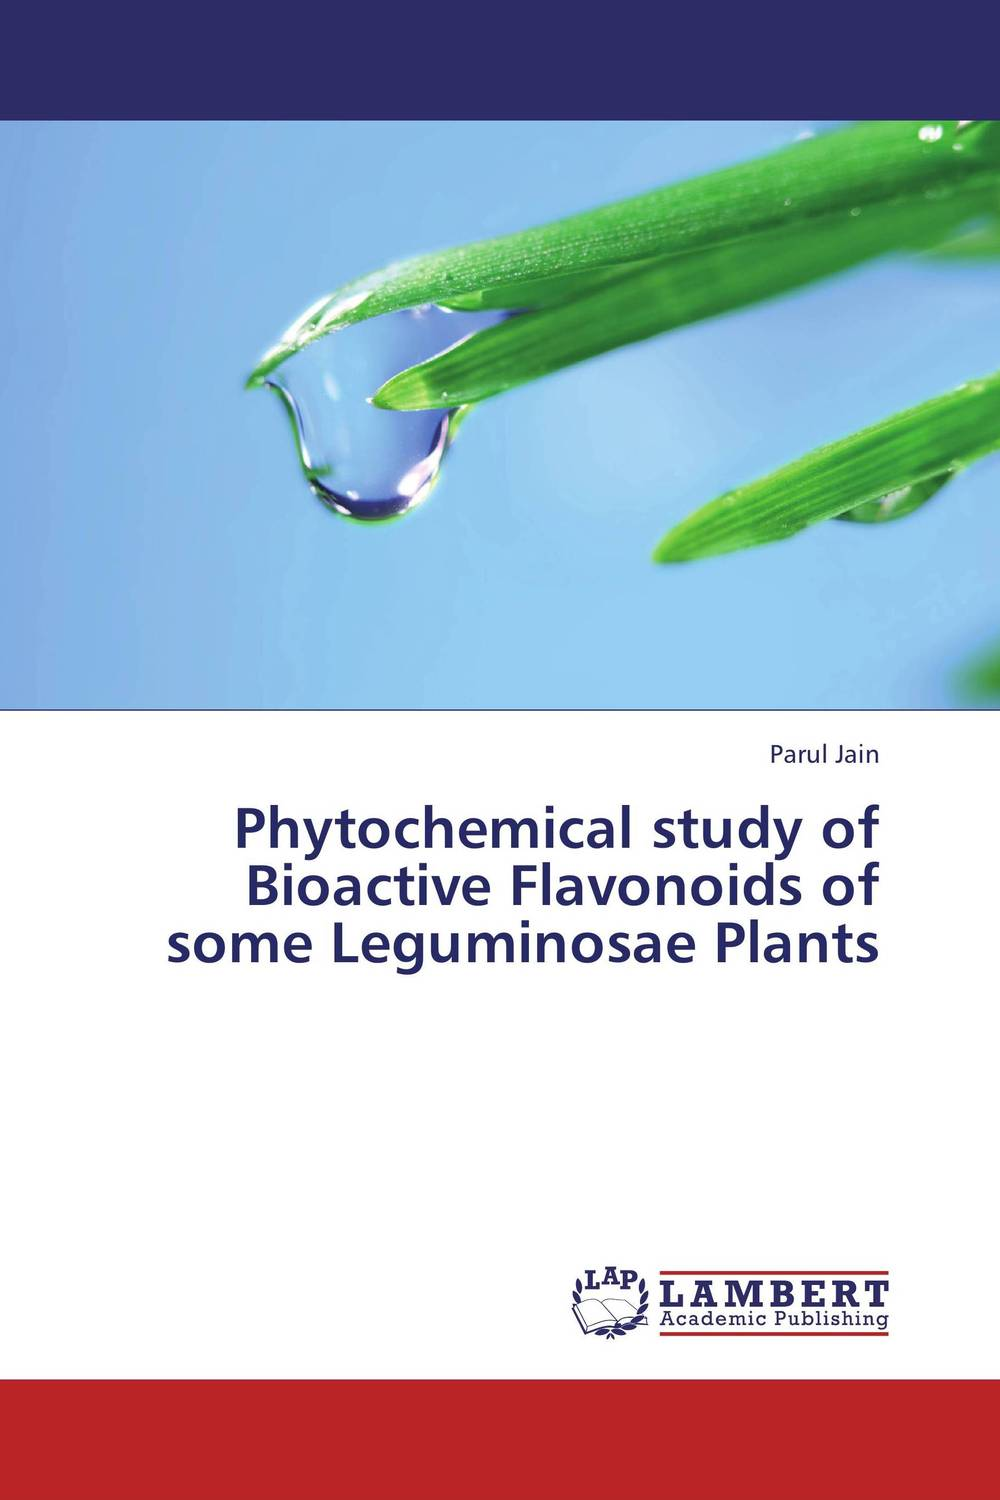 Phytochemical study of Bioactive Flavonoids of some Leguminosae Plants studies on the bioactive constituents of lawsonia alba henna